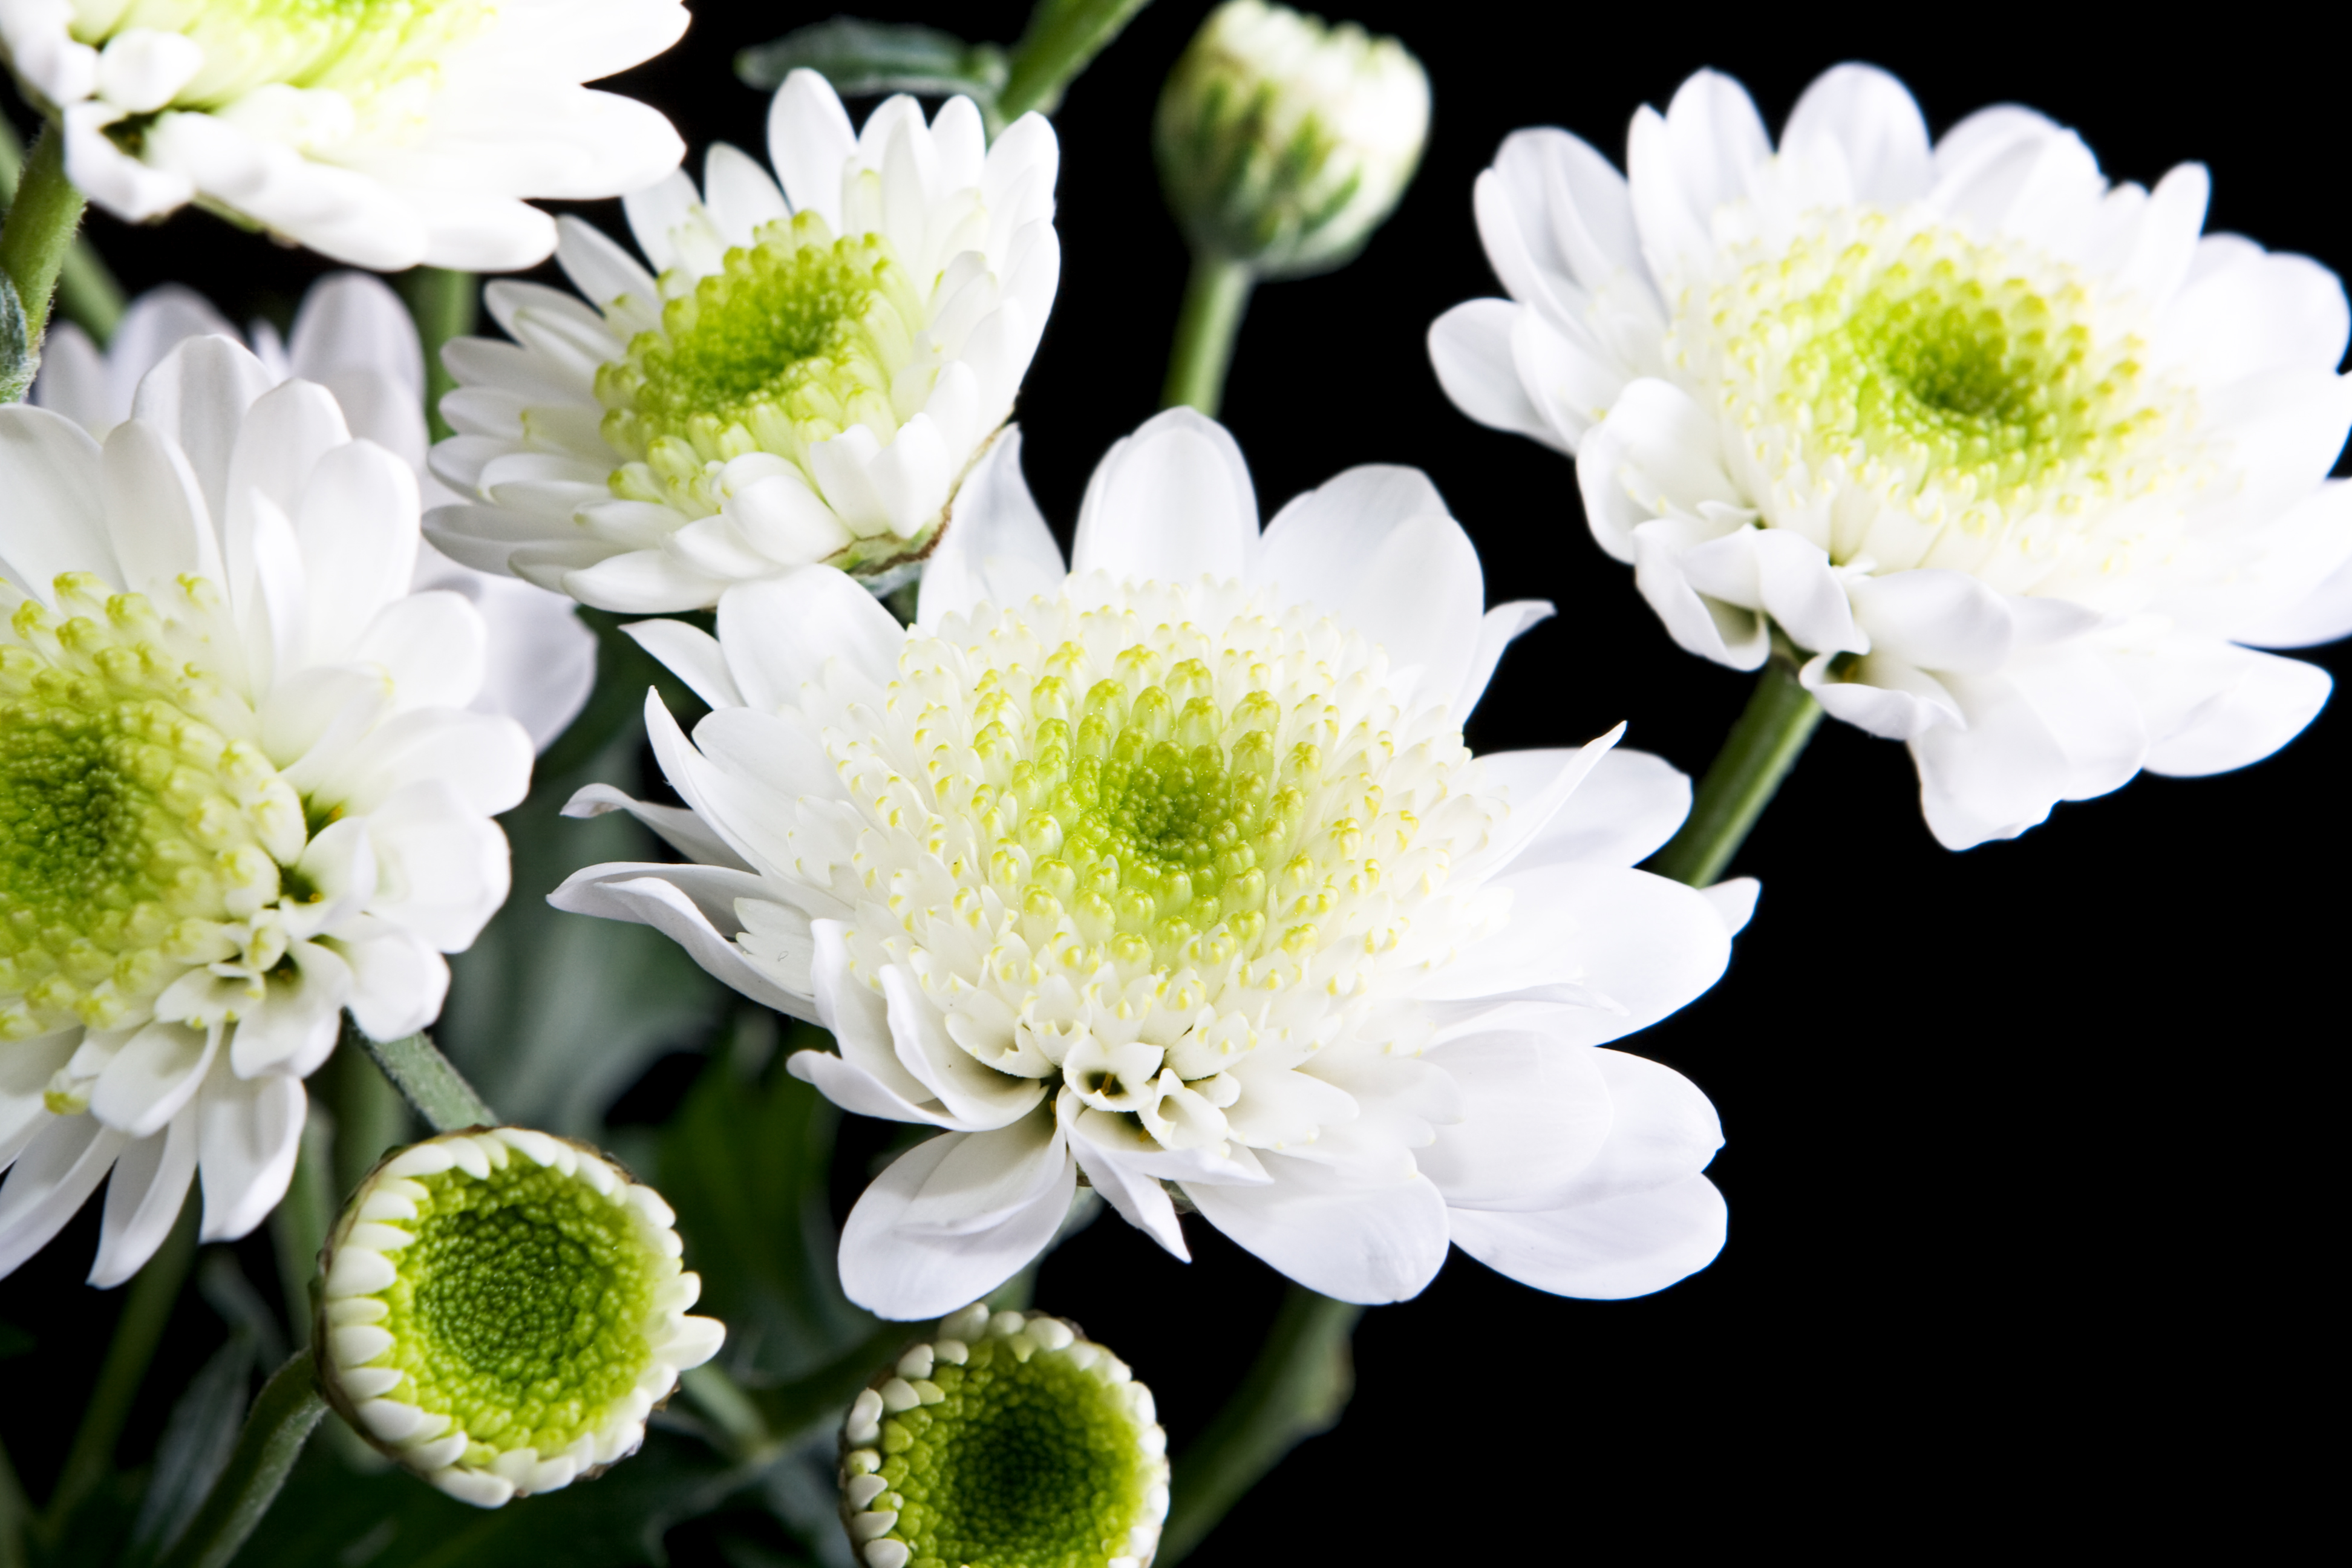 White flowers, Black, Flower, Flowers, Fresh, HQ Photo